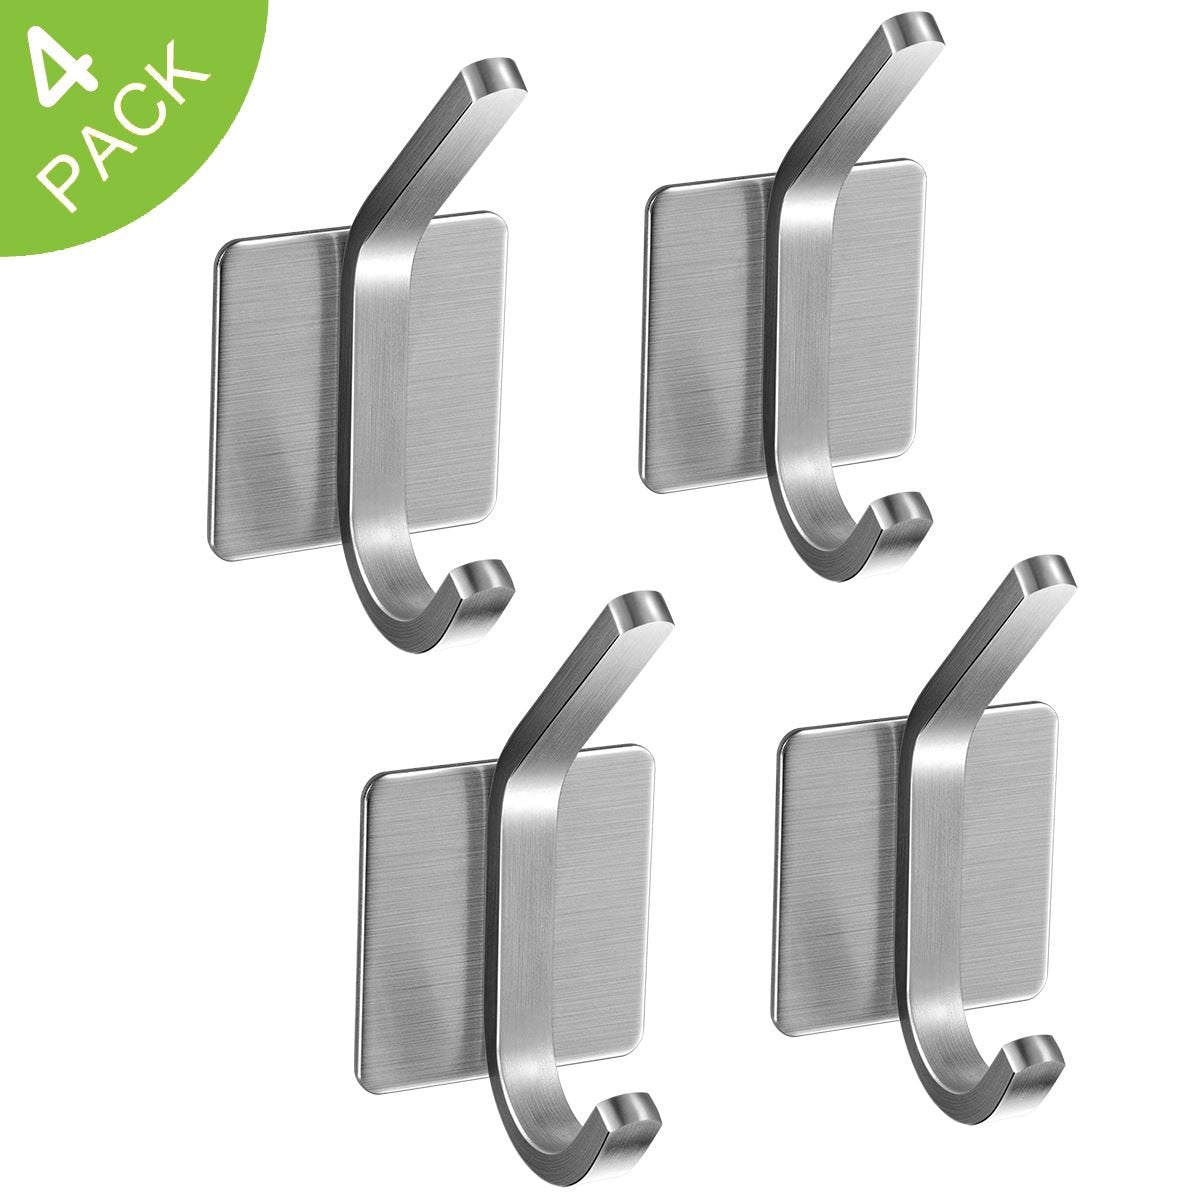 3M Self Adhesive Hooks, JISIMI 304 Stainless Steel Closets Coat Towel Robe Hook Rack Wall Mounted for Kitchen Bathrooms Lavatory Closets (4 Pack)